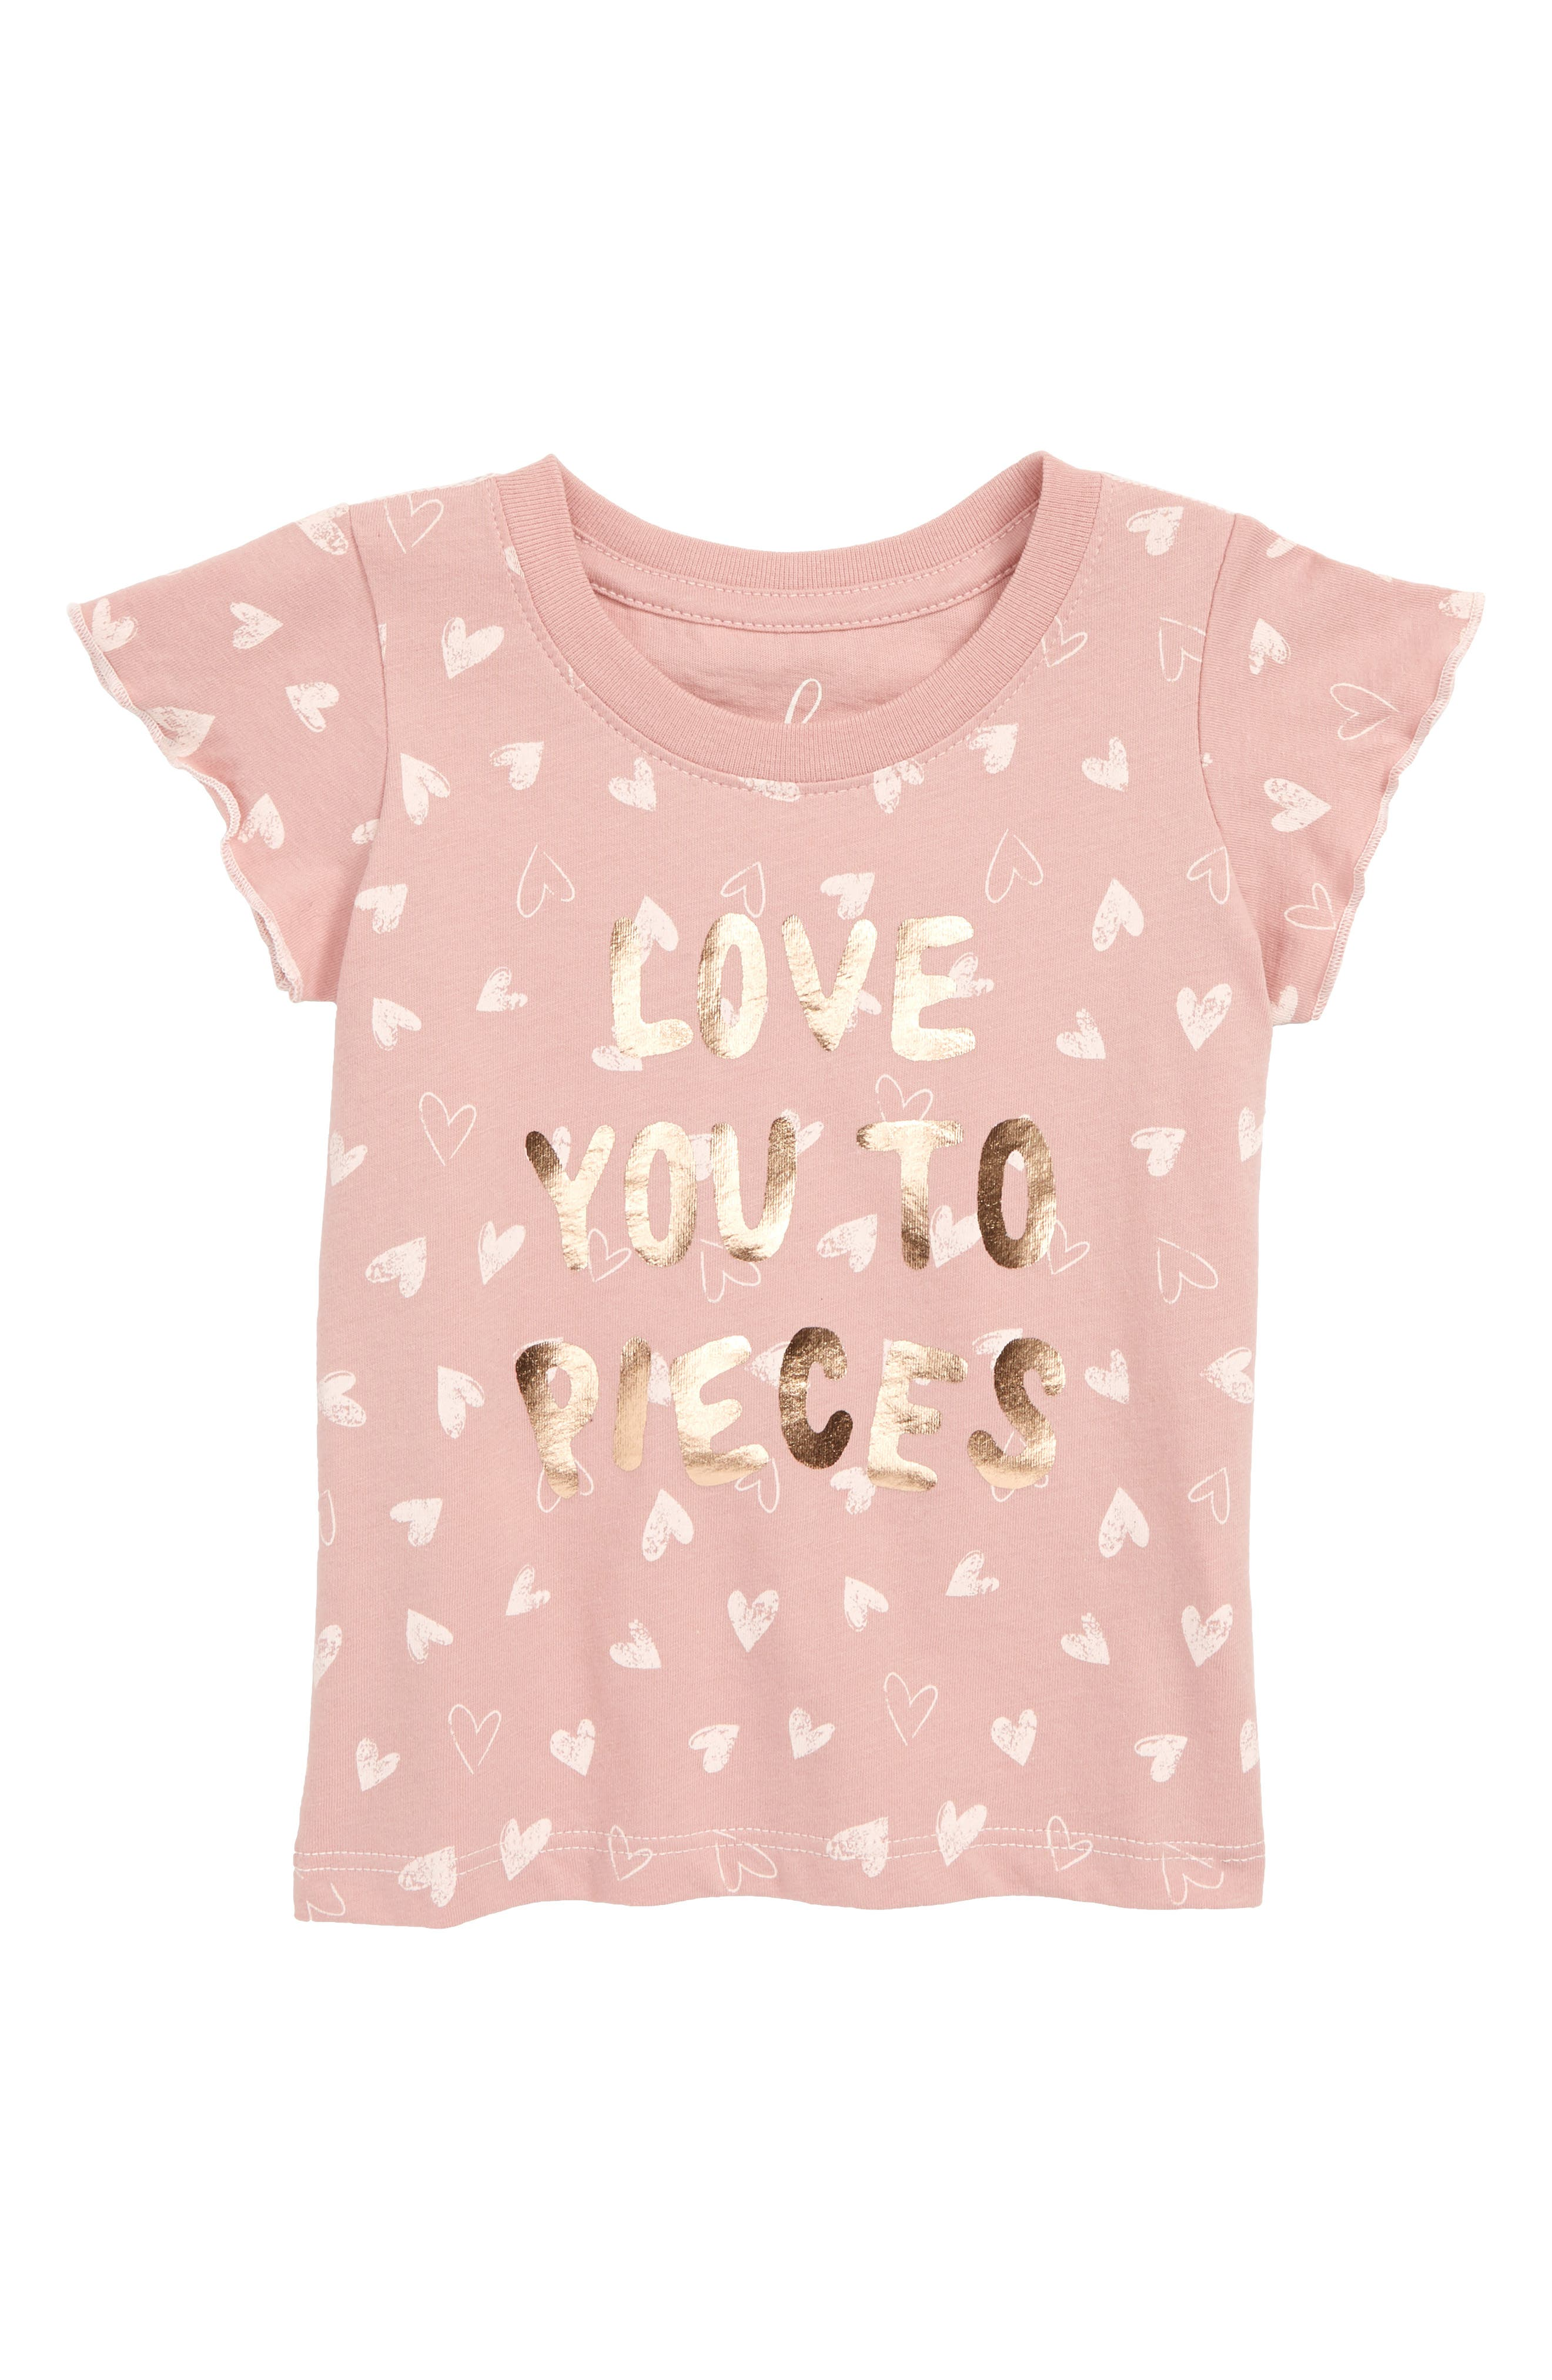 PEEK ESSENTIALS Peek Love You to Pieces Graphic T-Shirt, Main, color, PINK